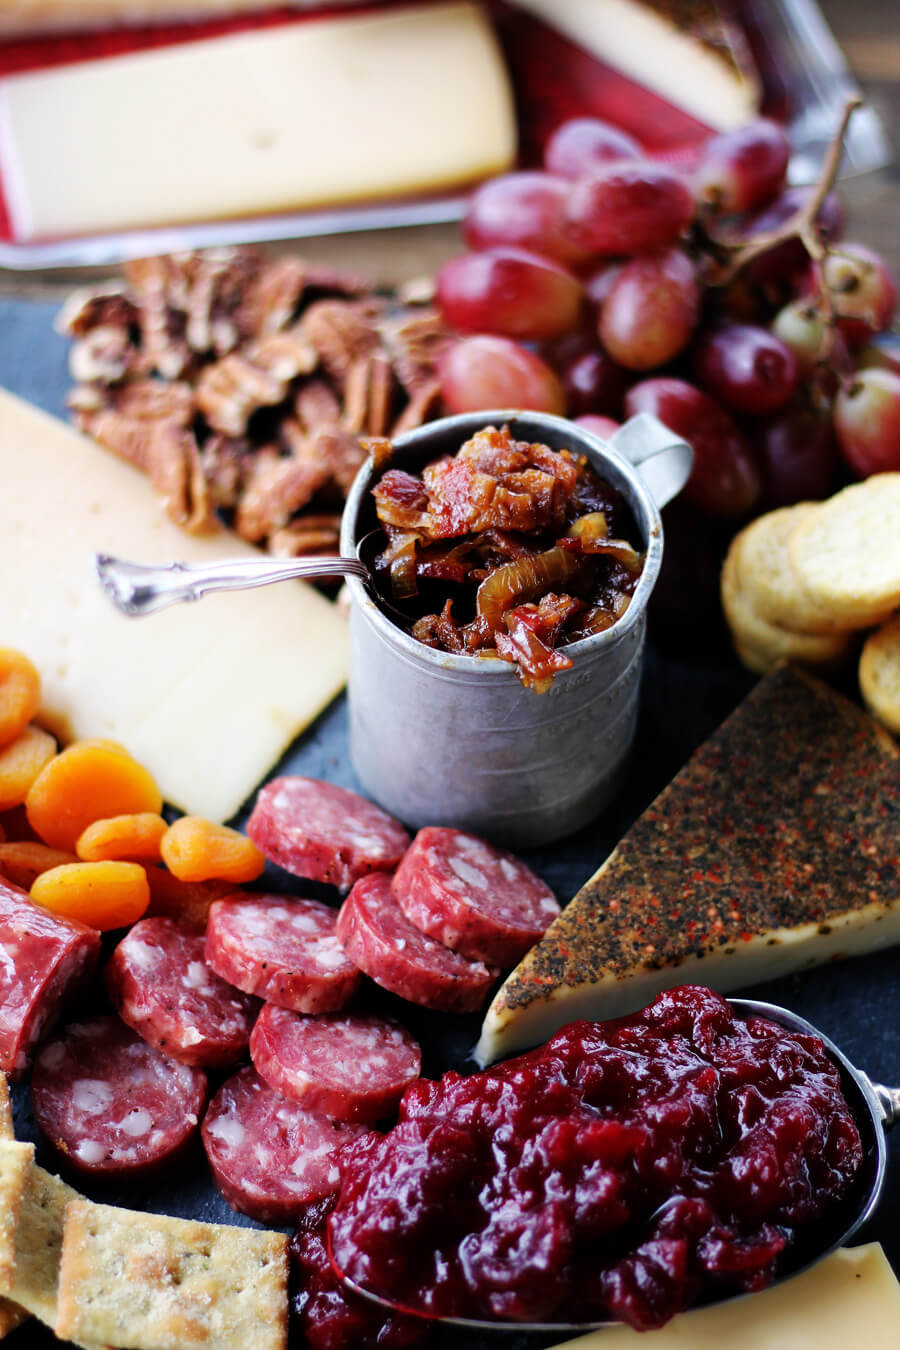 Delicious homemade Bacon Jam is perfect when paired with cheese, meats, and fruit.